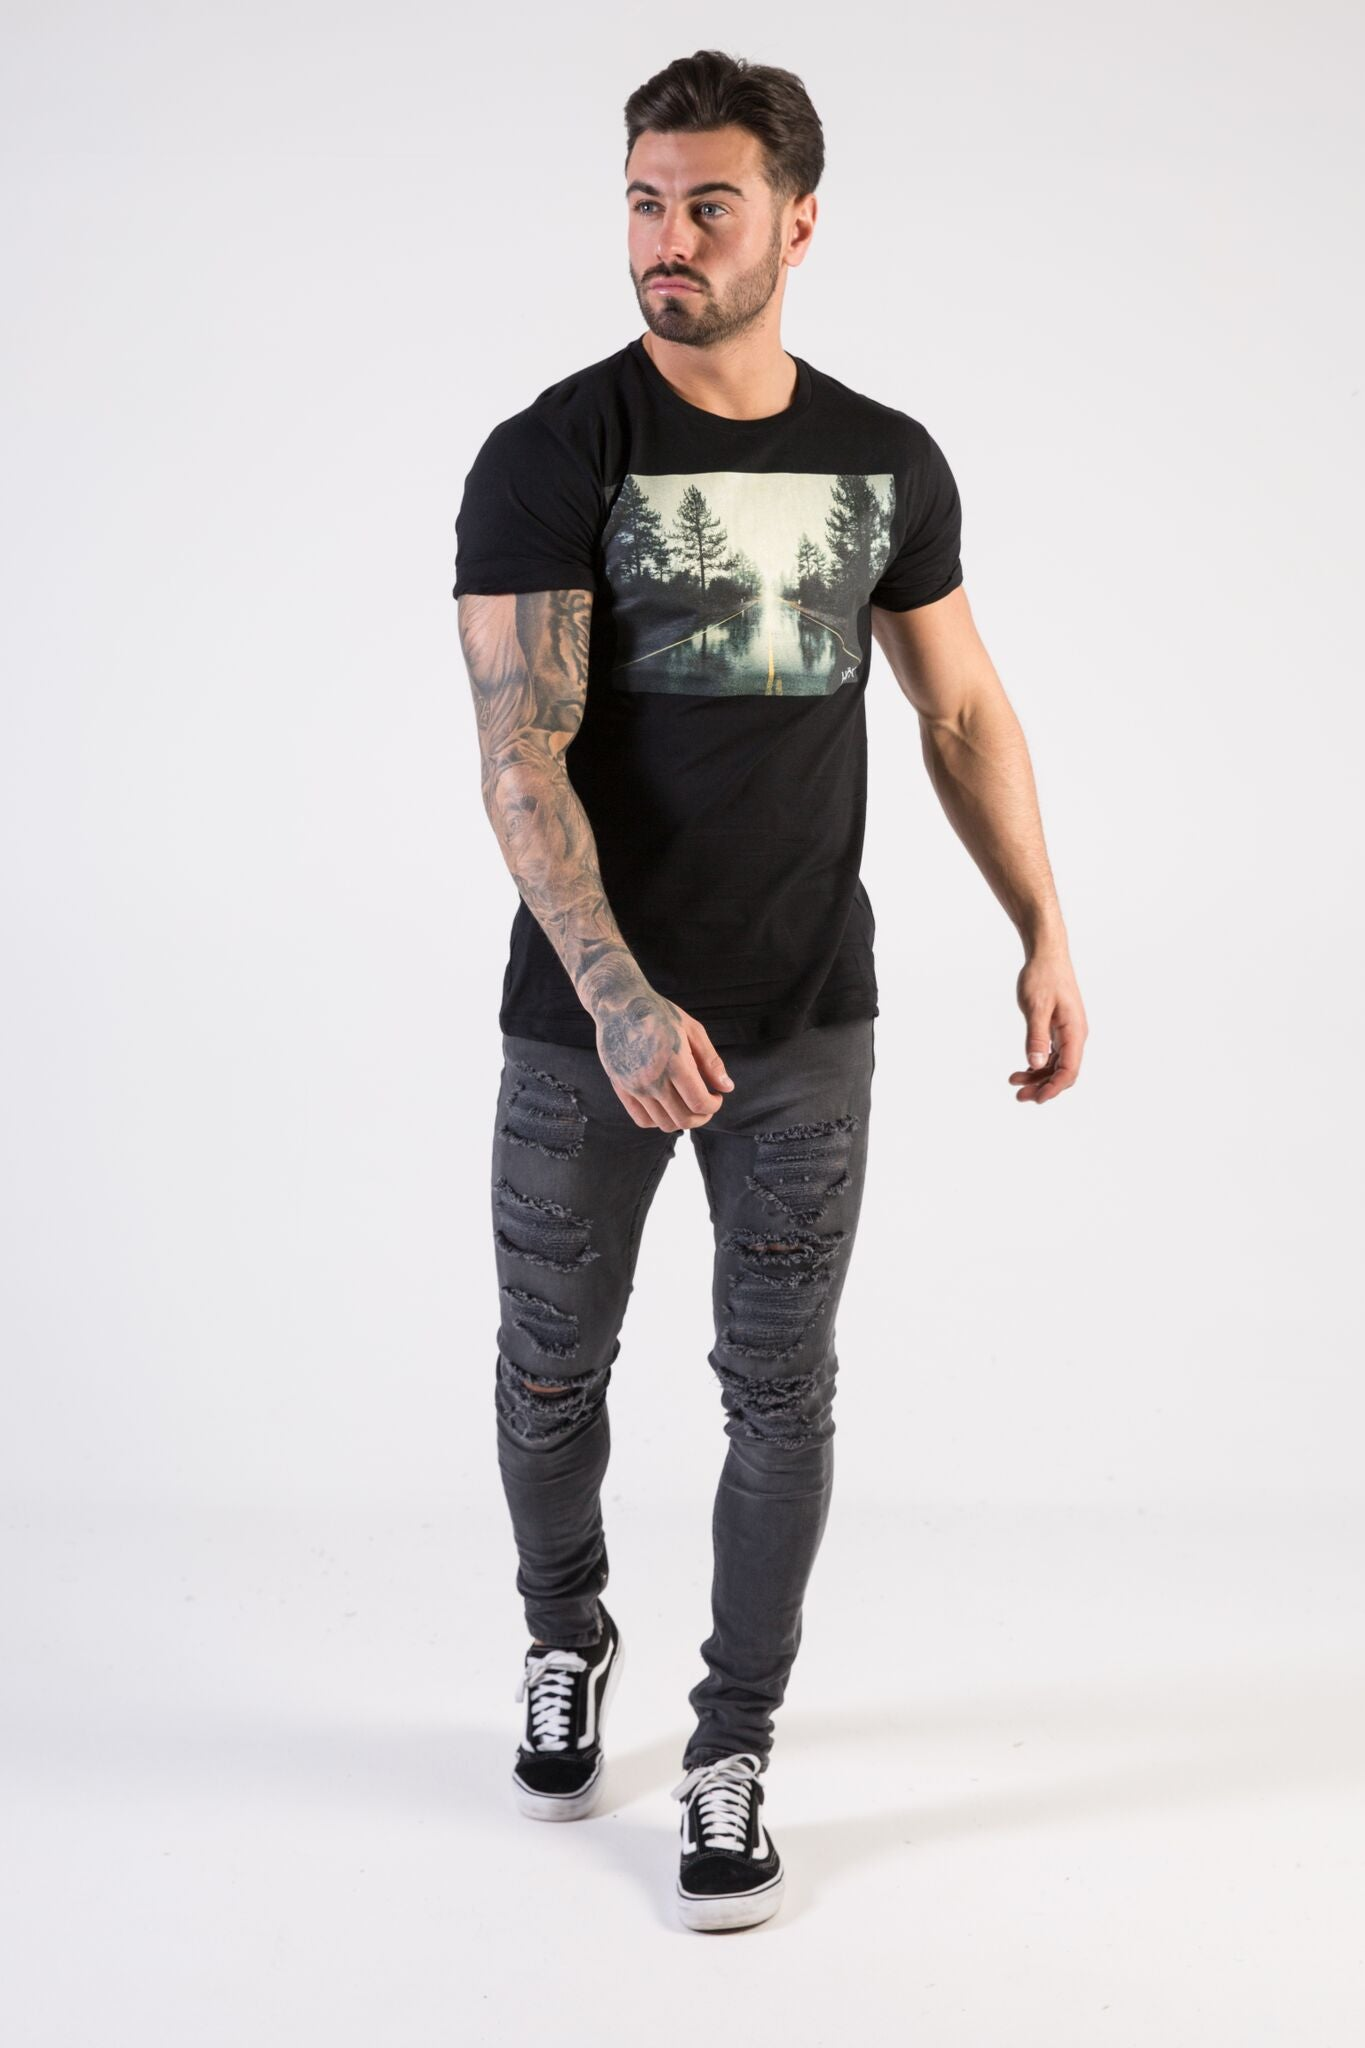 OPEN ROAD Muscle Fit T-Shirt - HÖRFA is a men's global fashion brand that provides products such as Fashionable Watches, Wallets, Sunglasses, Belts, Beard and Male Grooming Products